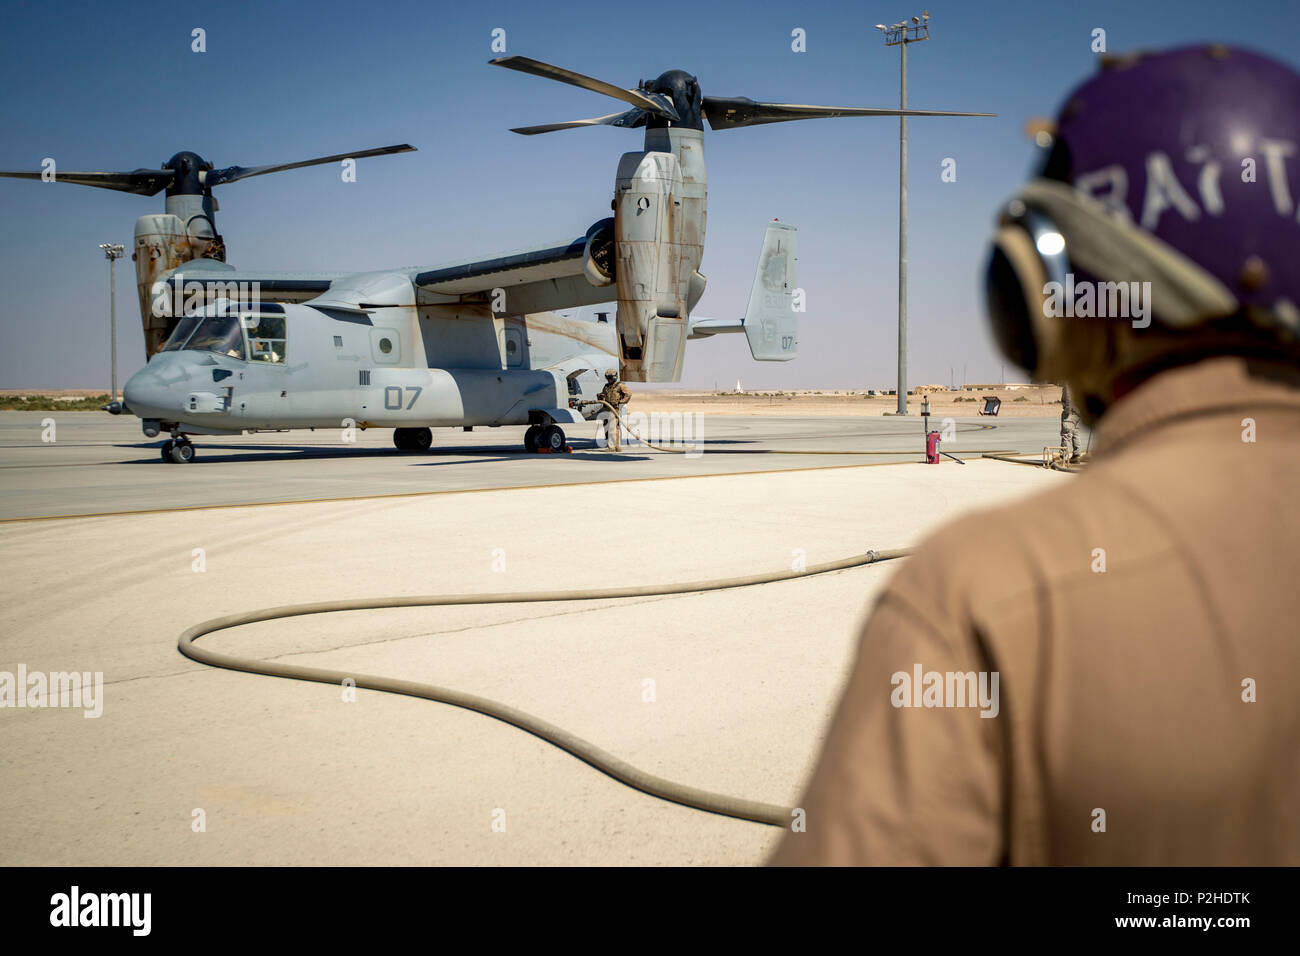 U.S. Marines with Marine Wing Support Squadron 373, Special Purpose Marine Air-Ground Task Force - Crisis Response - Central Command, fuel an MV-22 Osprey at a forward arming and refueling point during a Mission Rehearsal Exercise at a base in southern Jordan, Sept. 10, 2016. The MRX is a collective training event where the MAGTF elements collaborate to refine individual and cooperative capabilities. U.S. Marines and Sailors assigned to Special Purpose Marine Air-Ground Task Force-Crisis Response-Central Command support operations, contingencies and security cooperation in Marine Corps Forces  Stock Photo